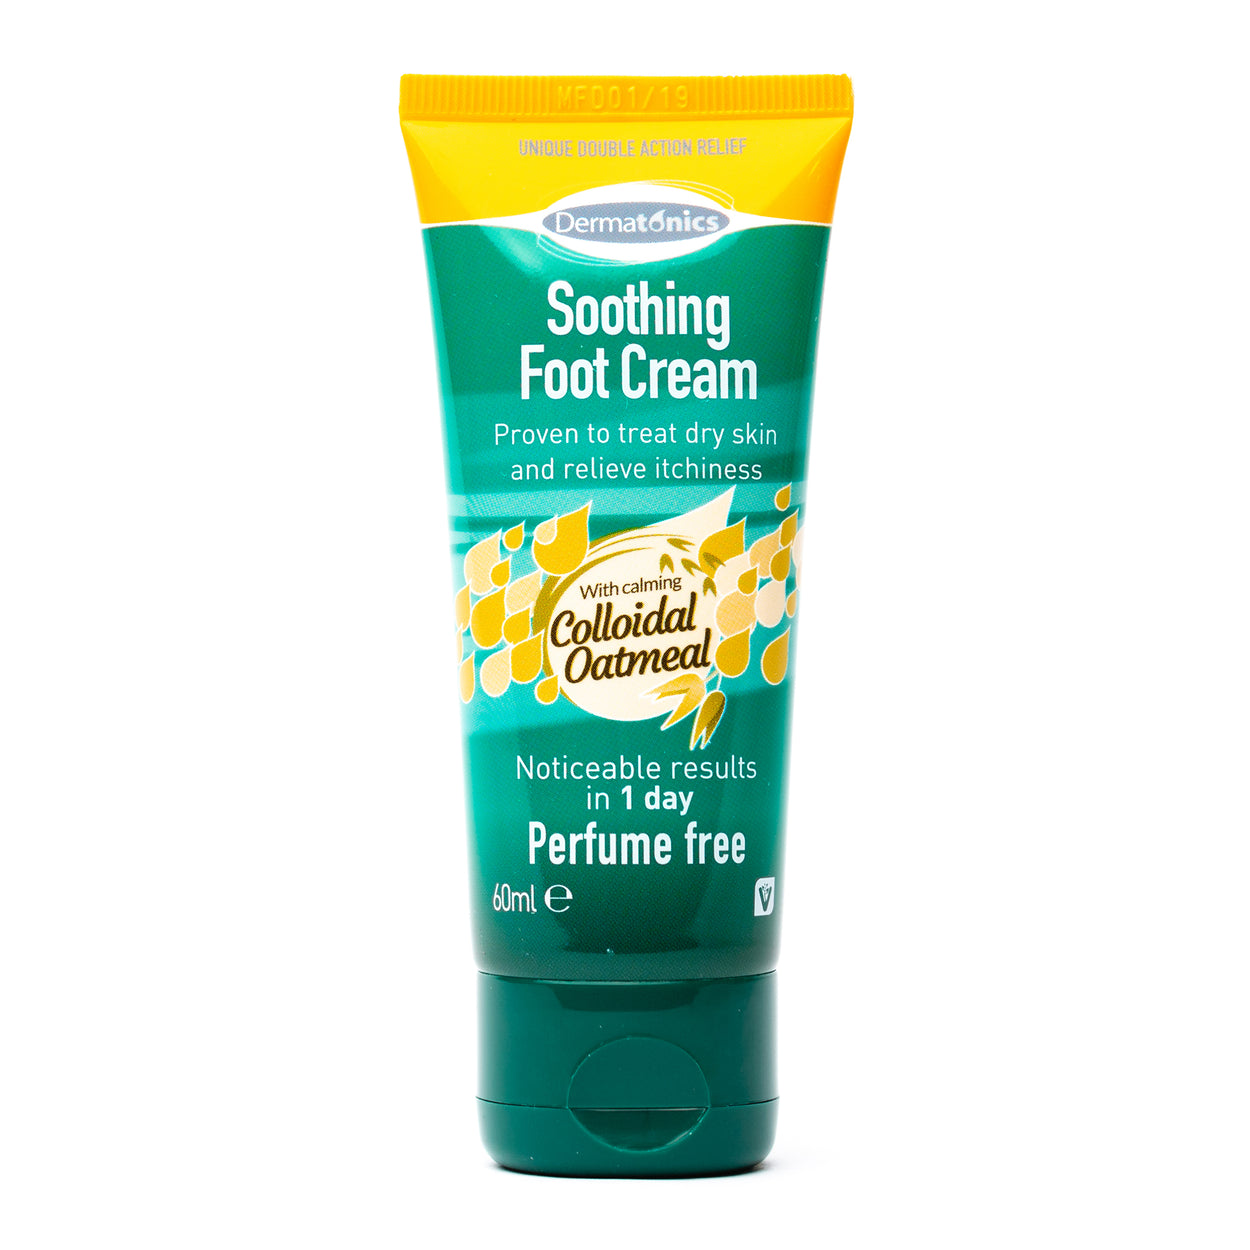 Dermatonics Soothing Foot Cream with Colloidal Oatmeal